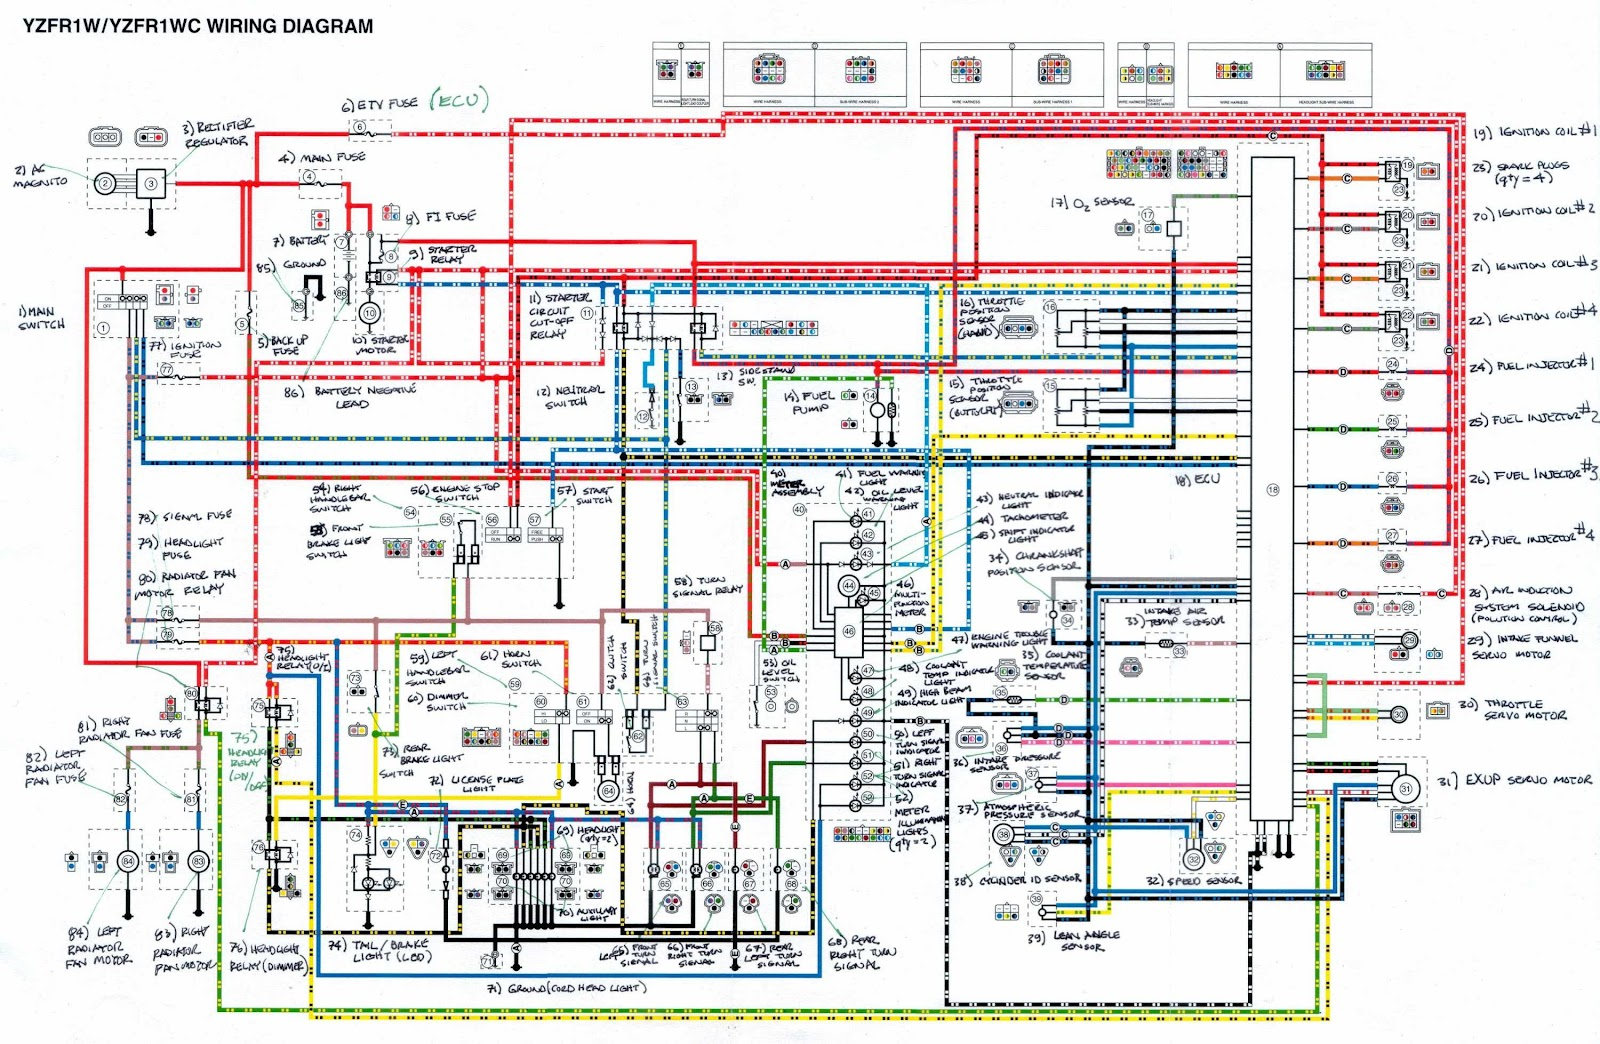 Yamaha Moto 4 225 Wiring Diagram Best Wiring Diagram 2017 - Wiring Diagram